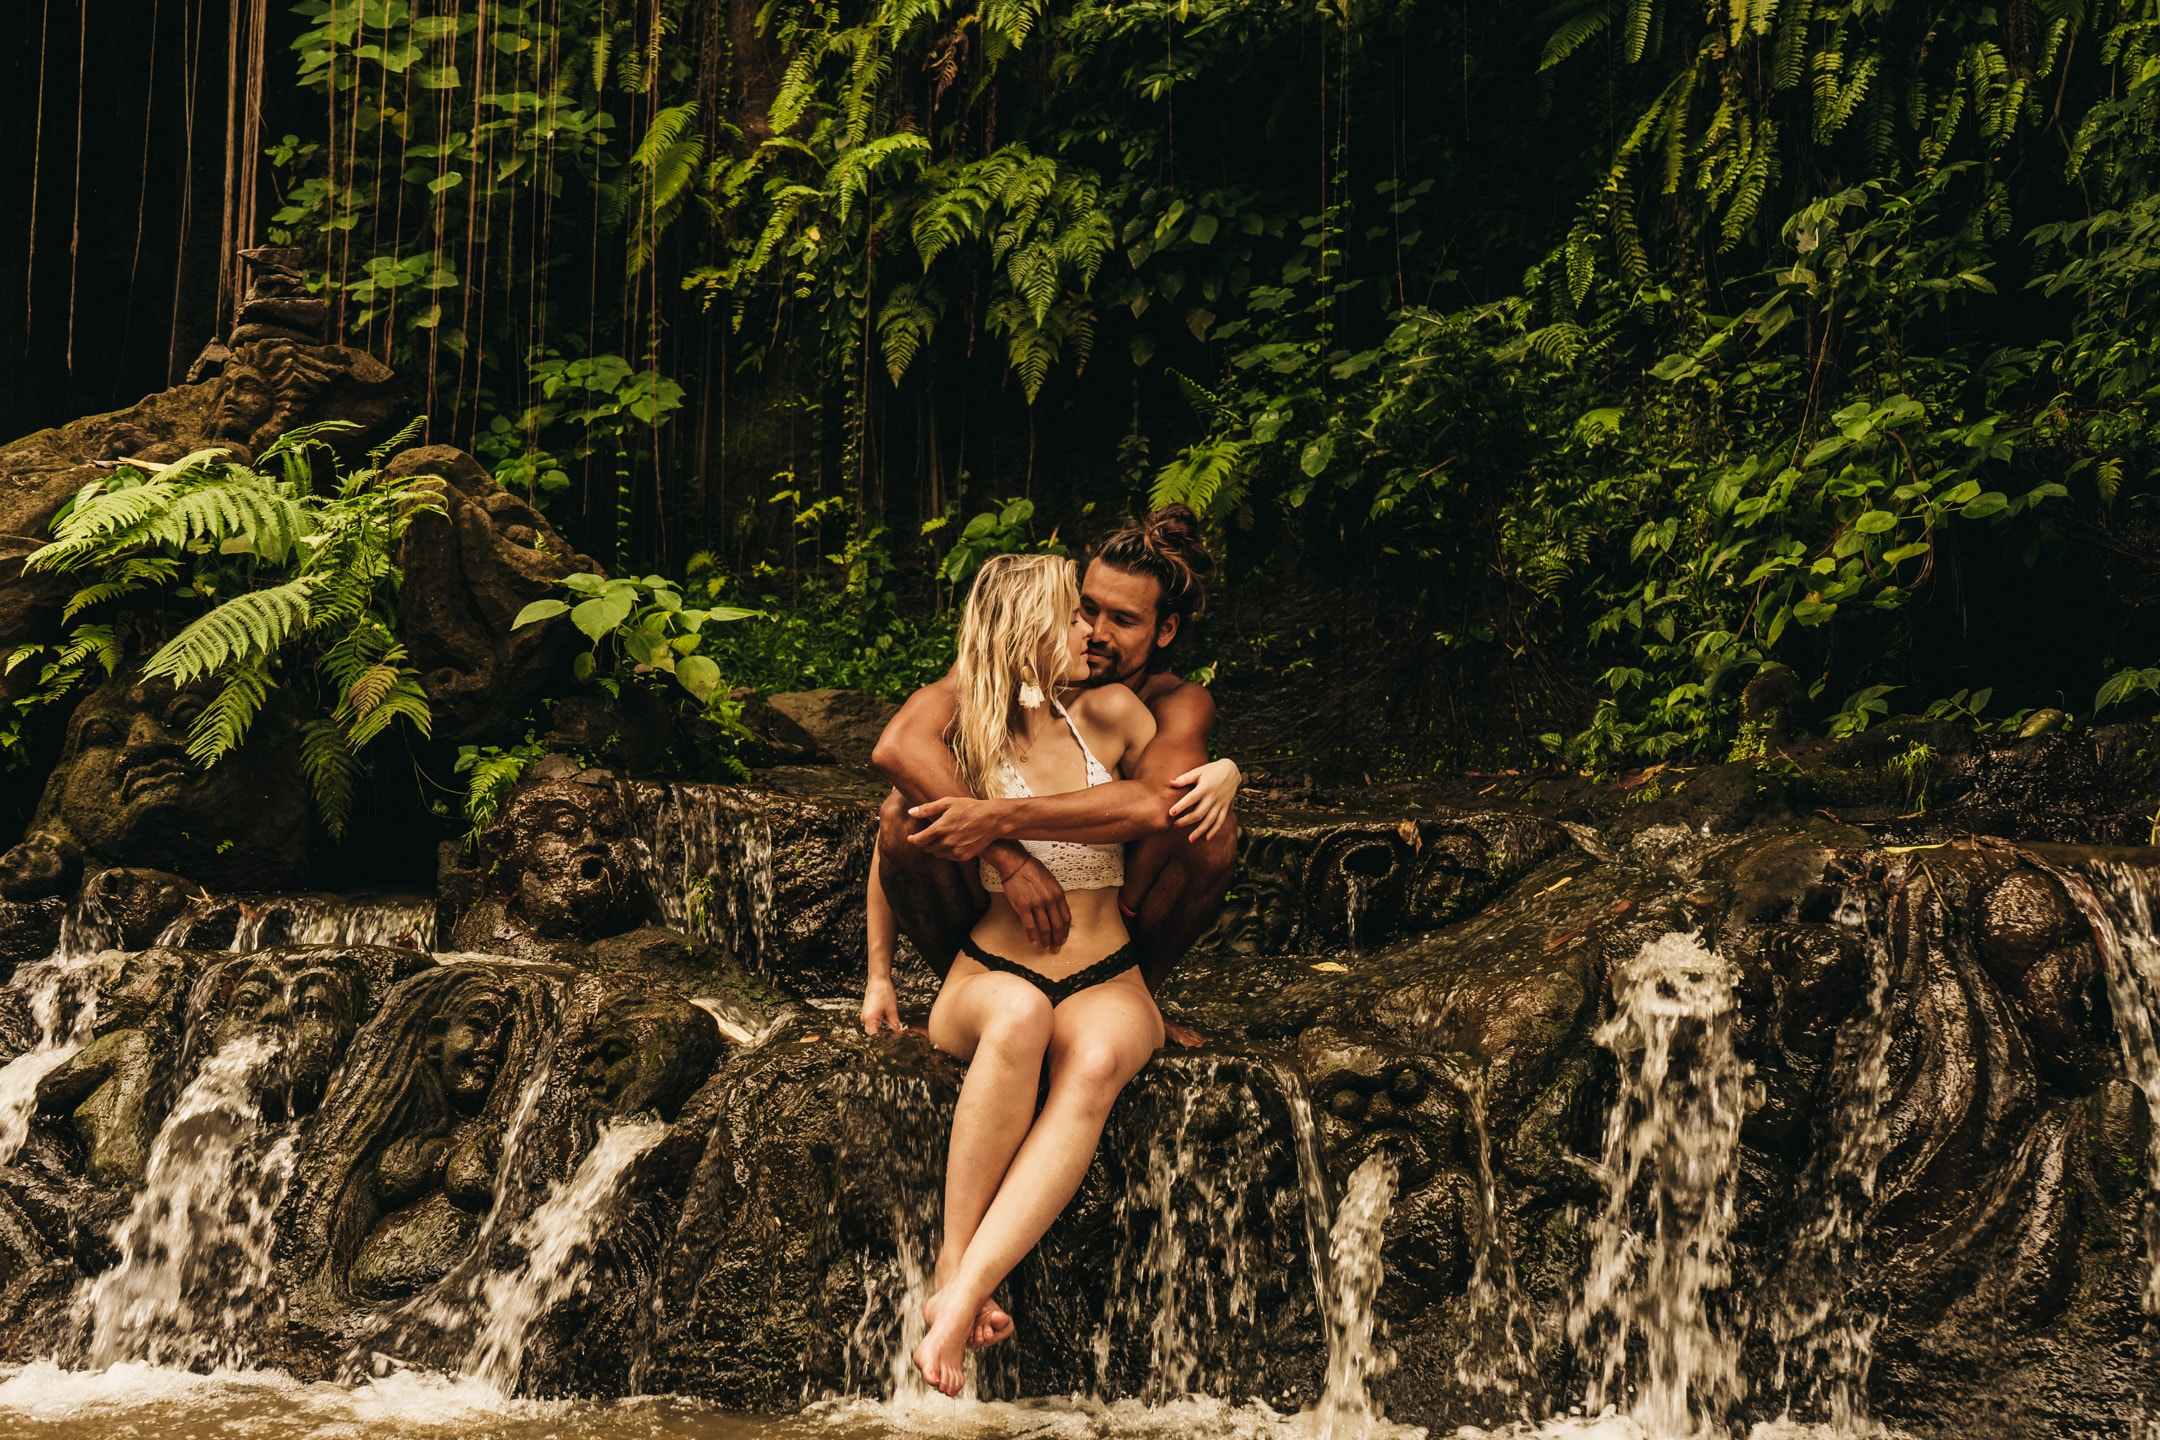 couple photo shoot. boy and girl sitting in flowing water hugging each other in the middle of nature